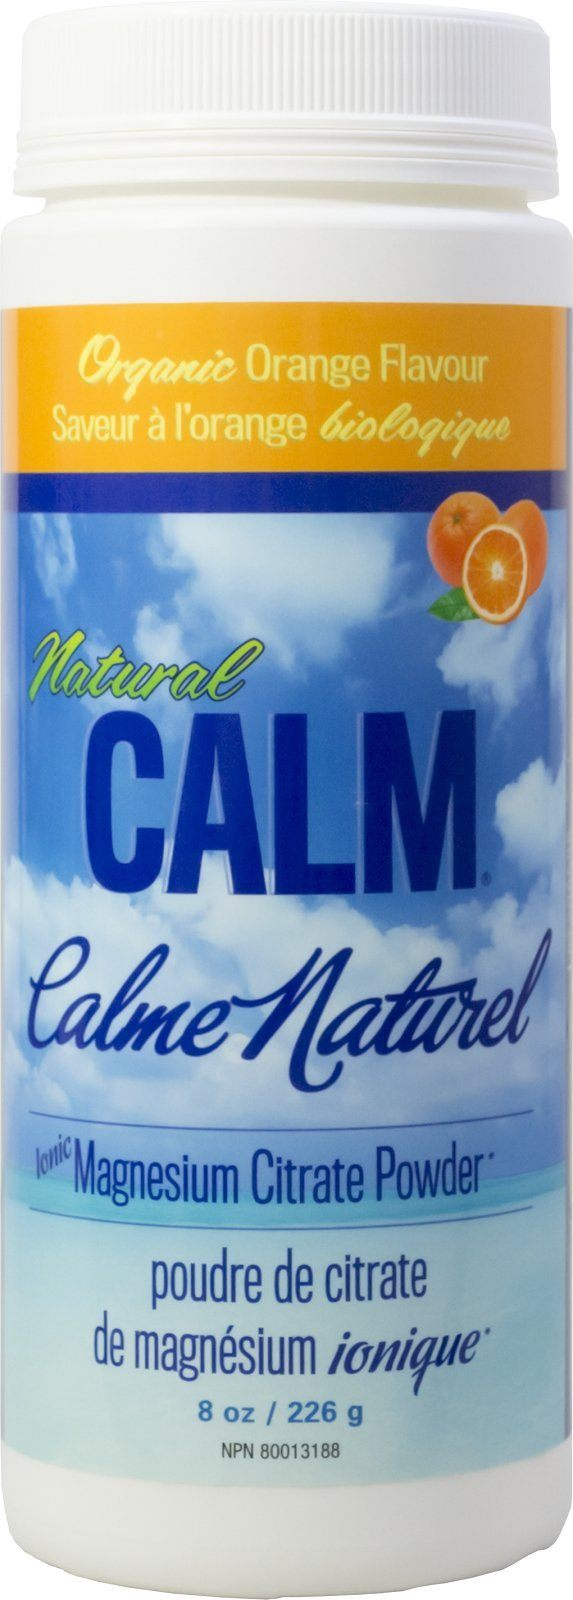 Supplements & Vitamins - Natural Calm - Calm Magnesium Orange, 226g